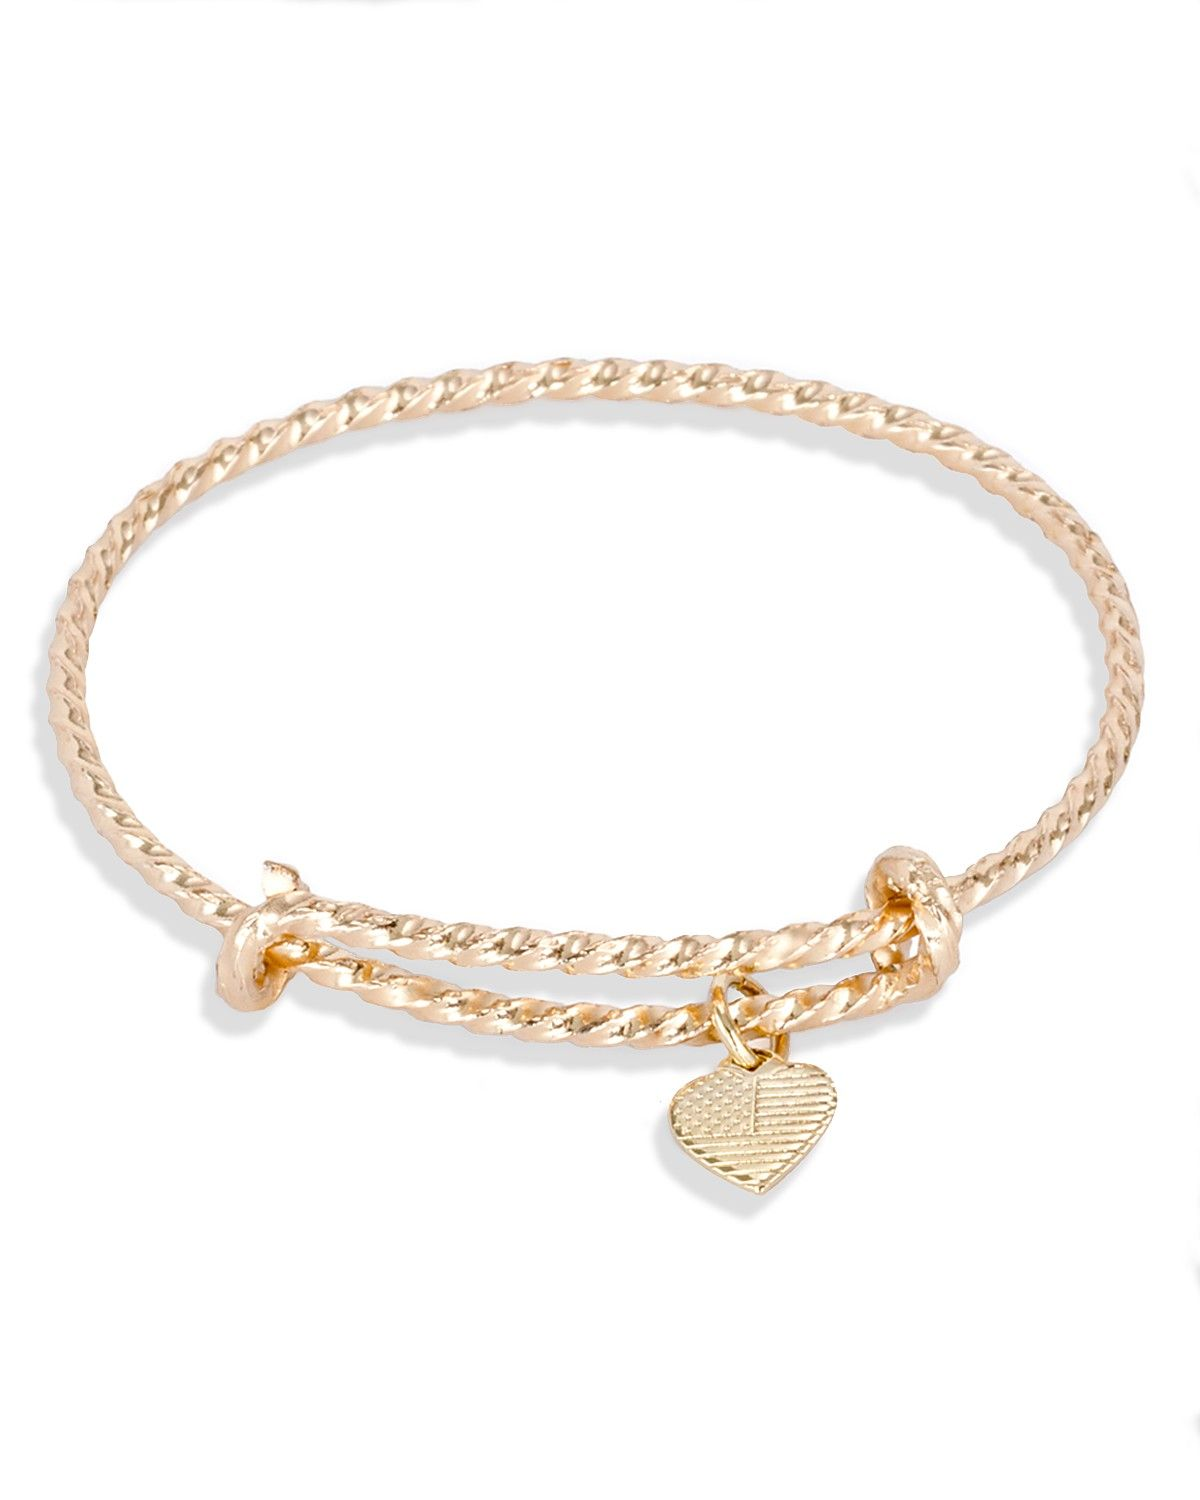 Alex And Ani's Stackable Bangles Are The Perfect Summer Accessory